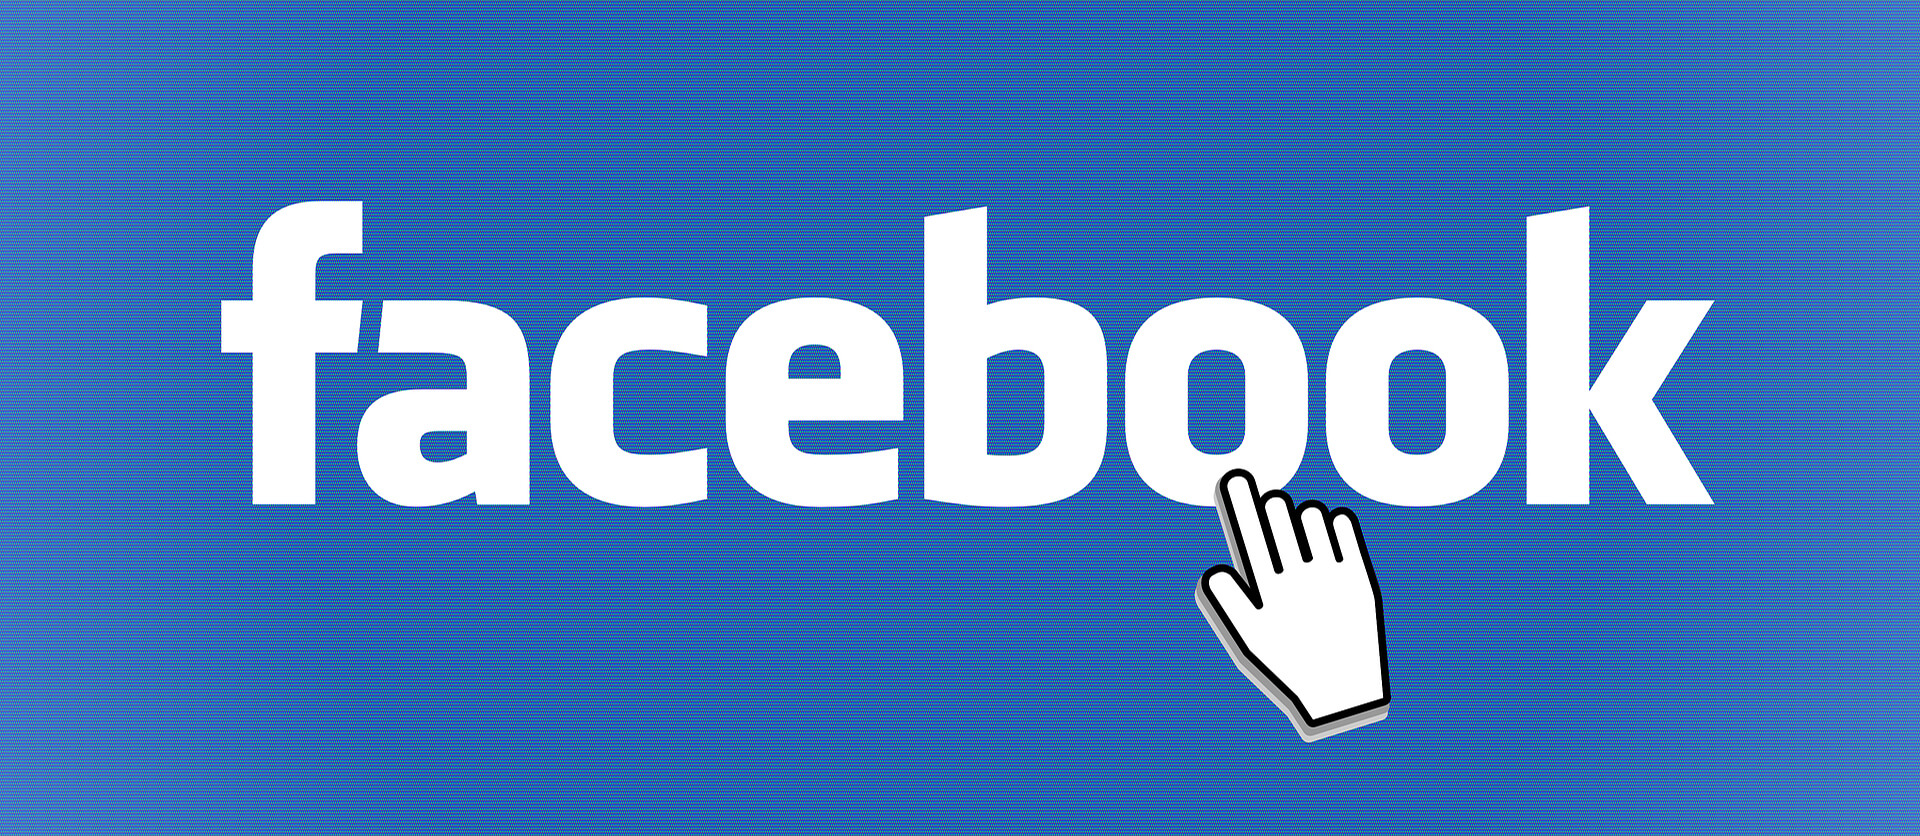 Facebook News launches in the UK image